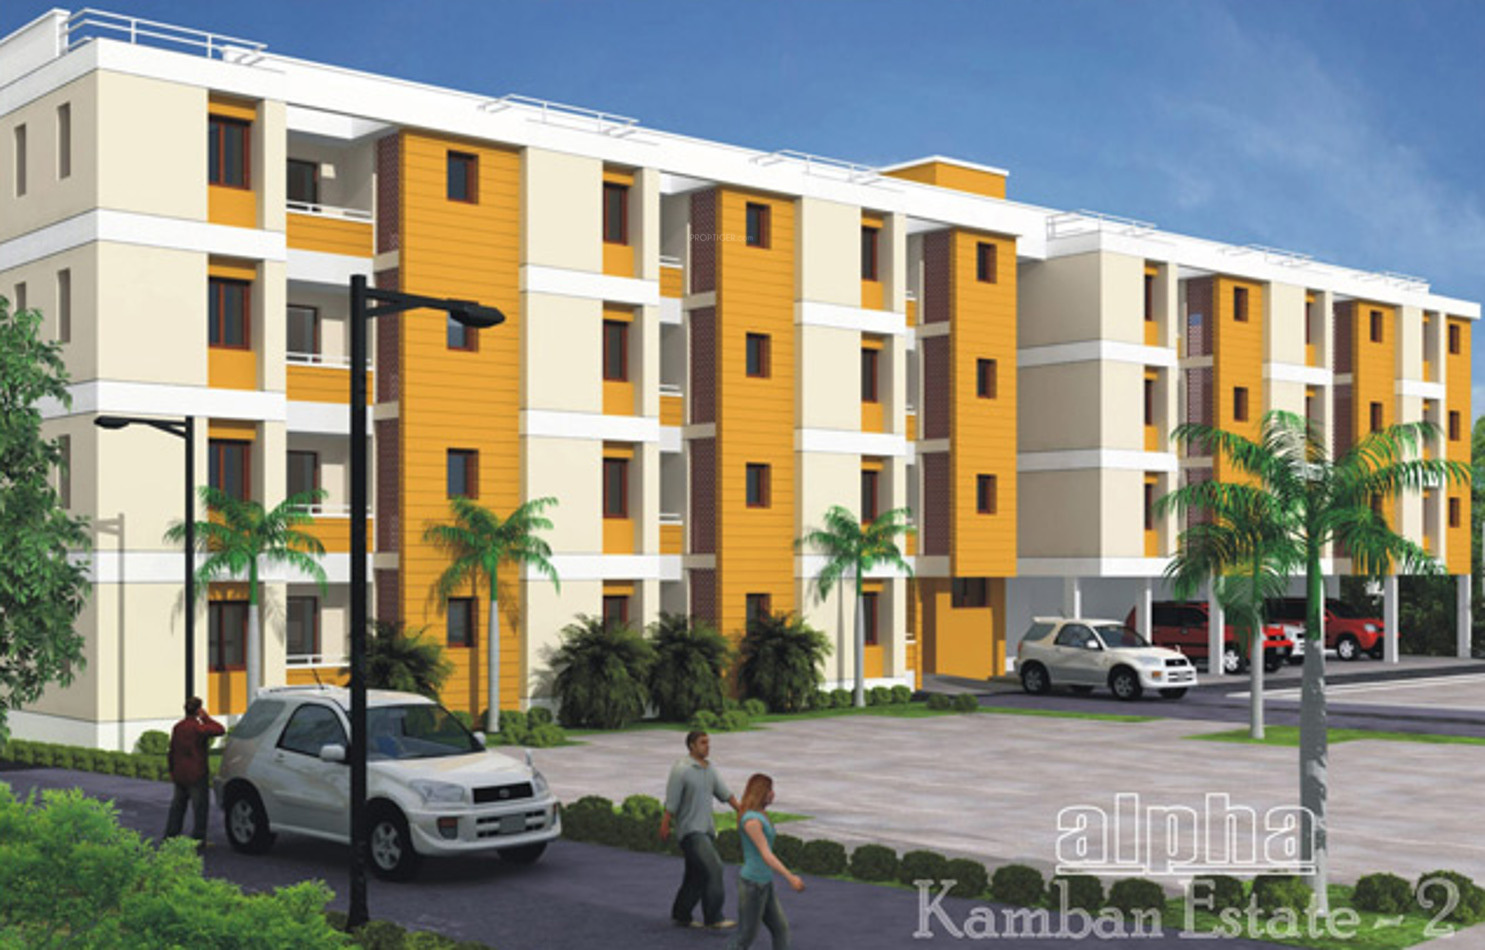 Flats/Apartments in Pondicherry – Buy Residential Apartments/Flats